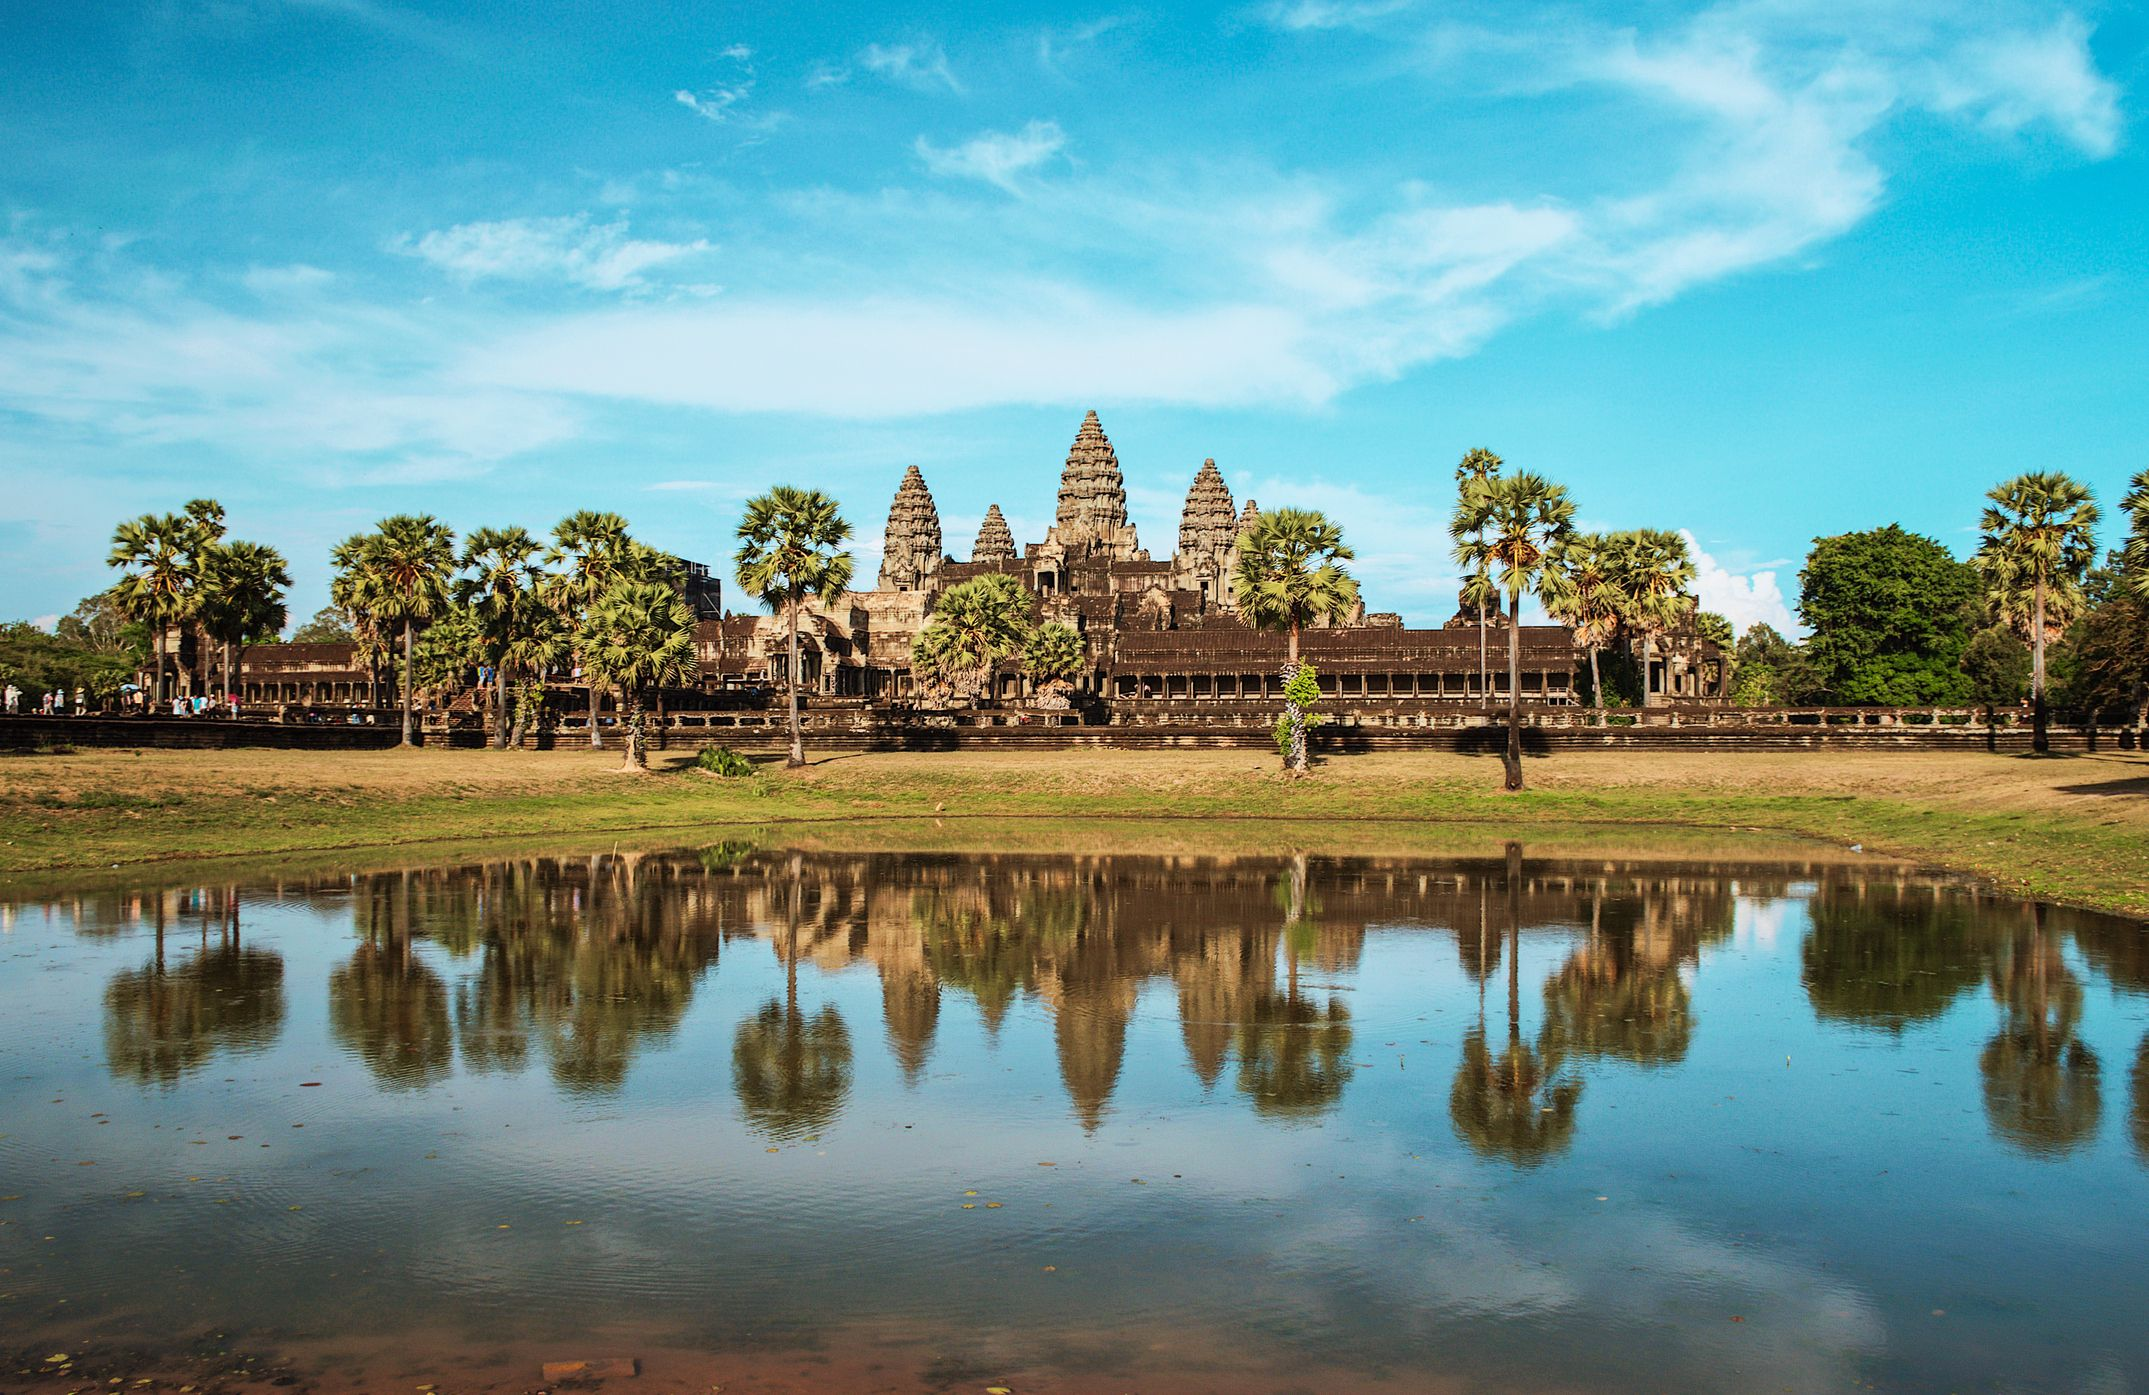 Angkor Wat- most popular landmarks in the world